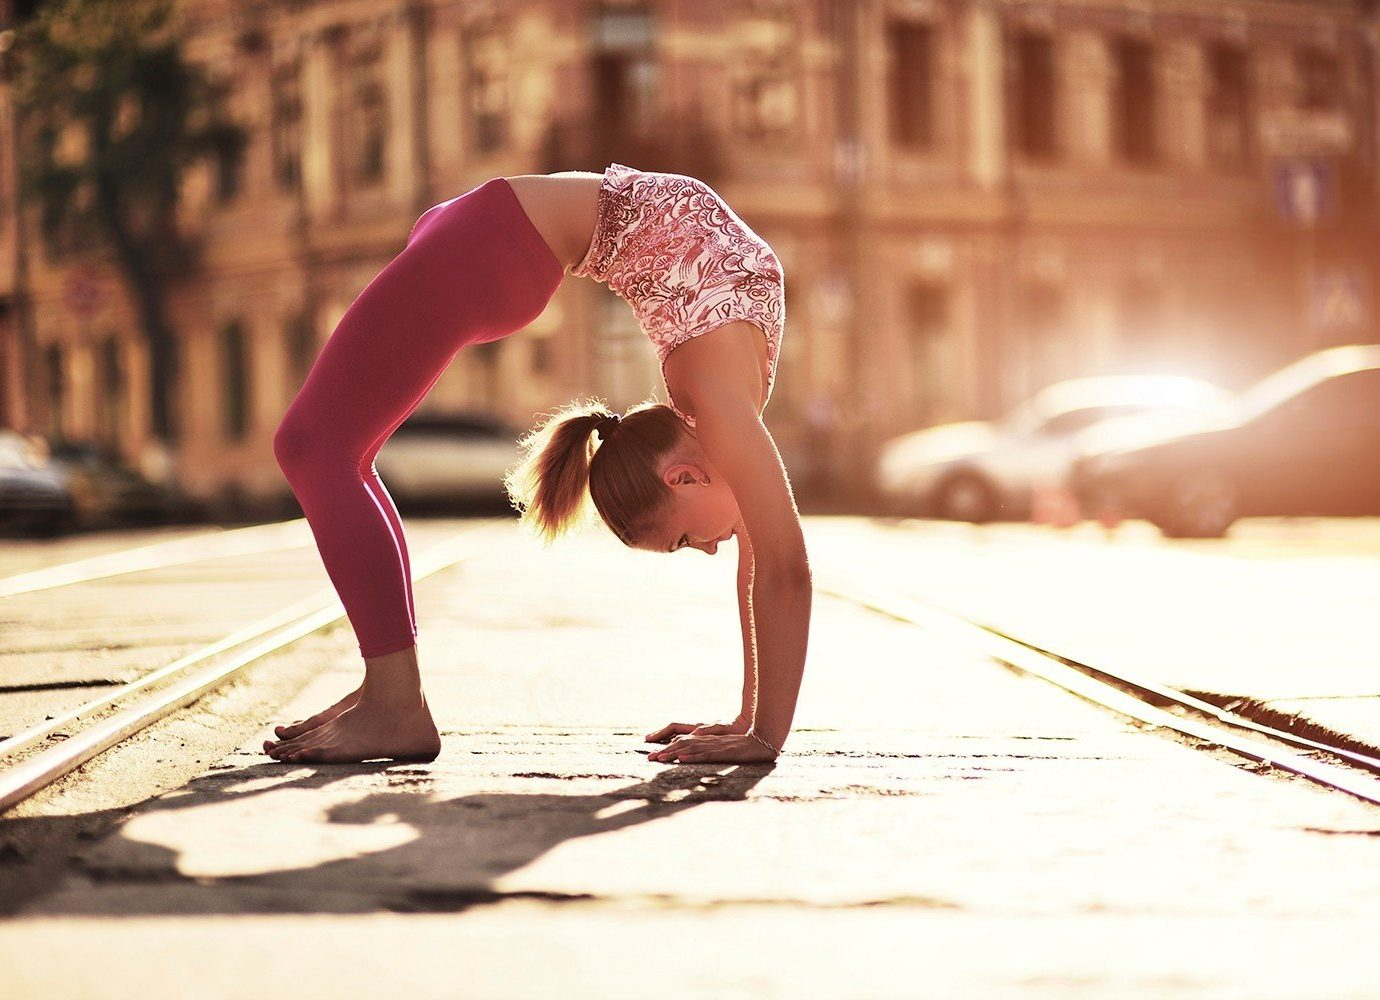 Offbeat photograph outdoor person human positions Beauty physical fitness sports Sport muscle model leg photo shoot yoga